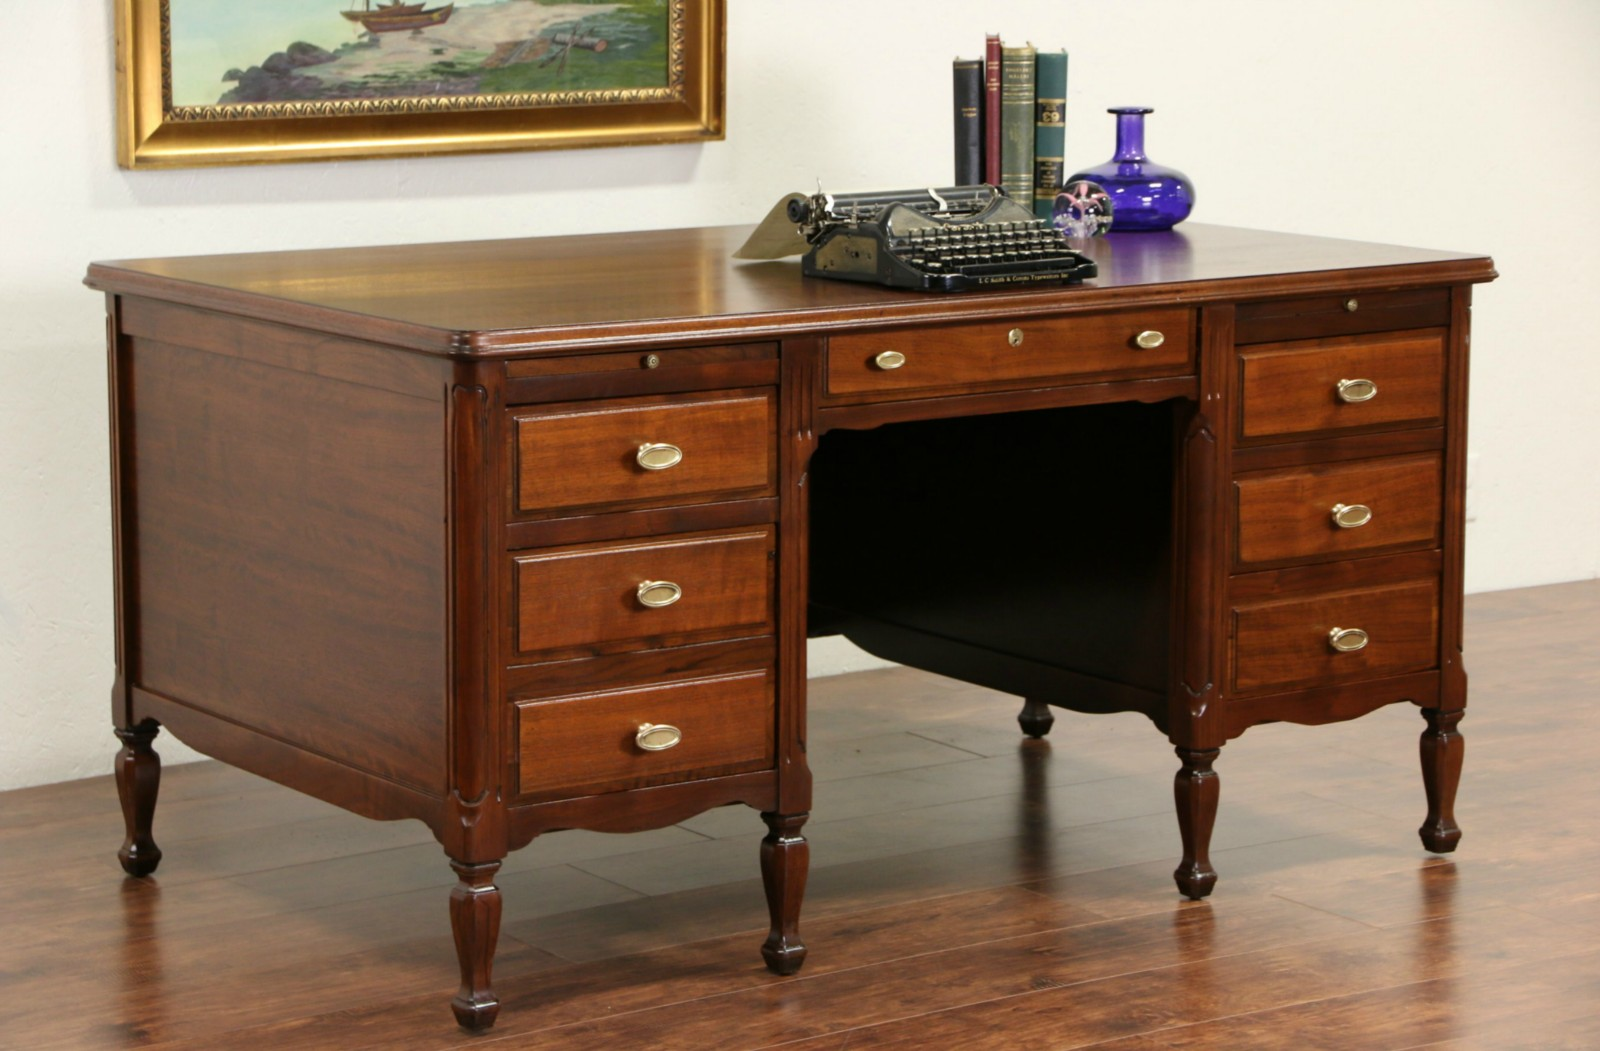 sold - clemco signed executive walnut 1930's vintage library or